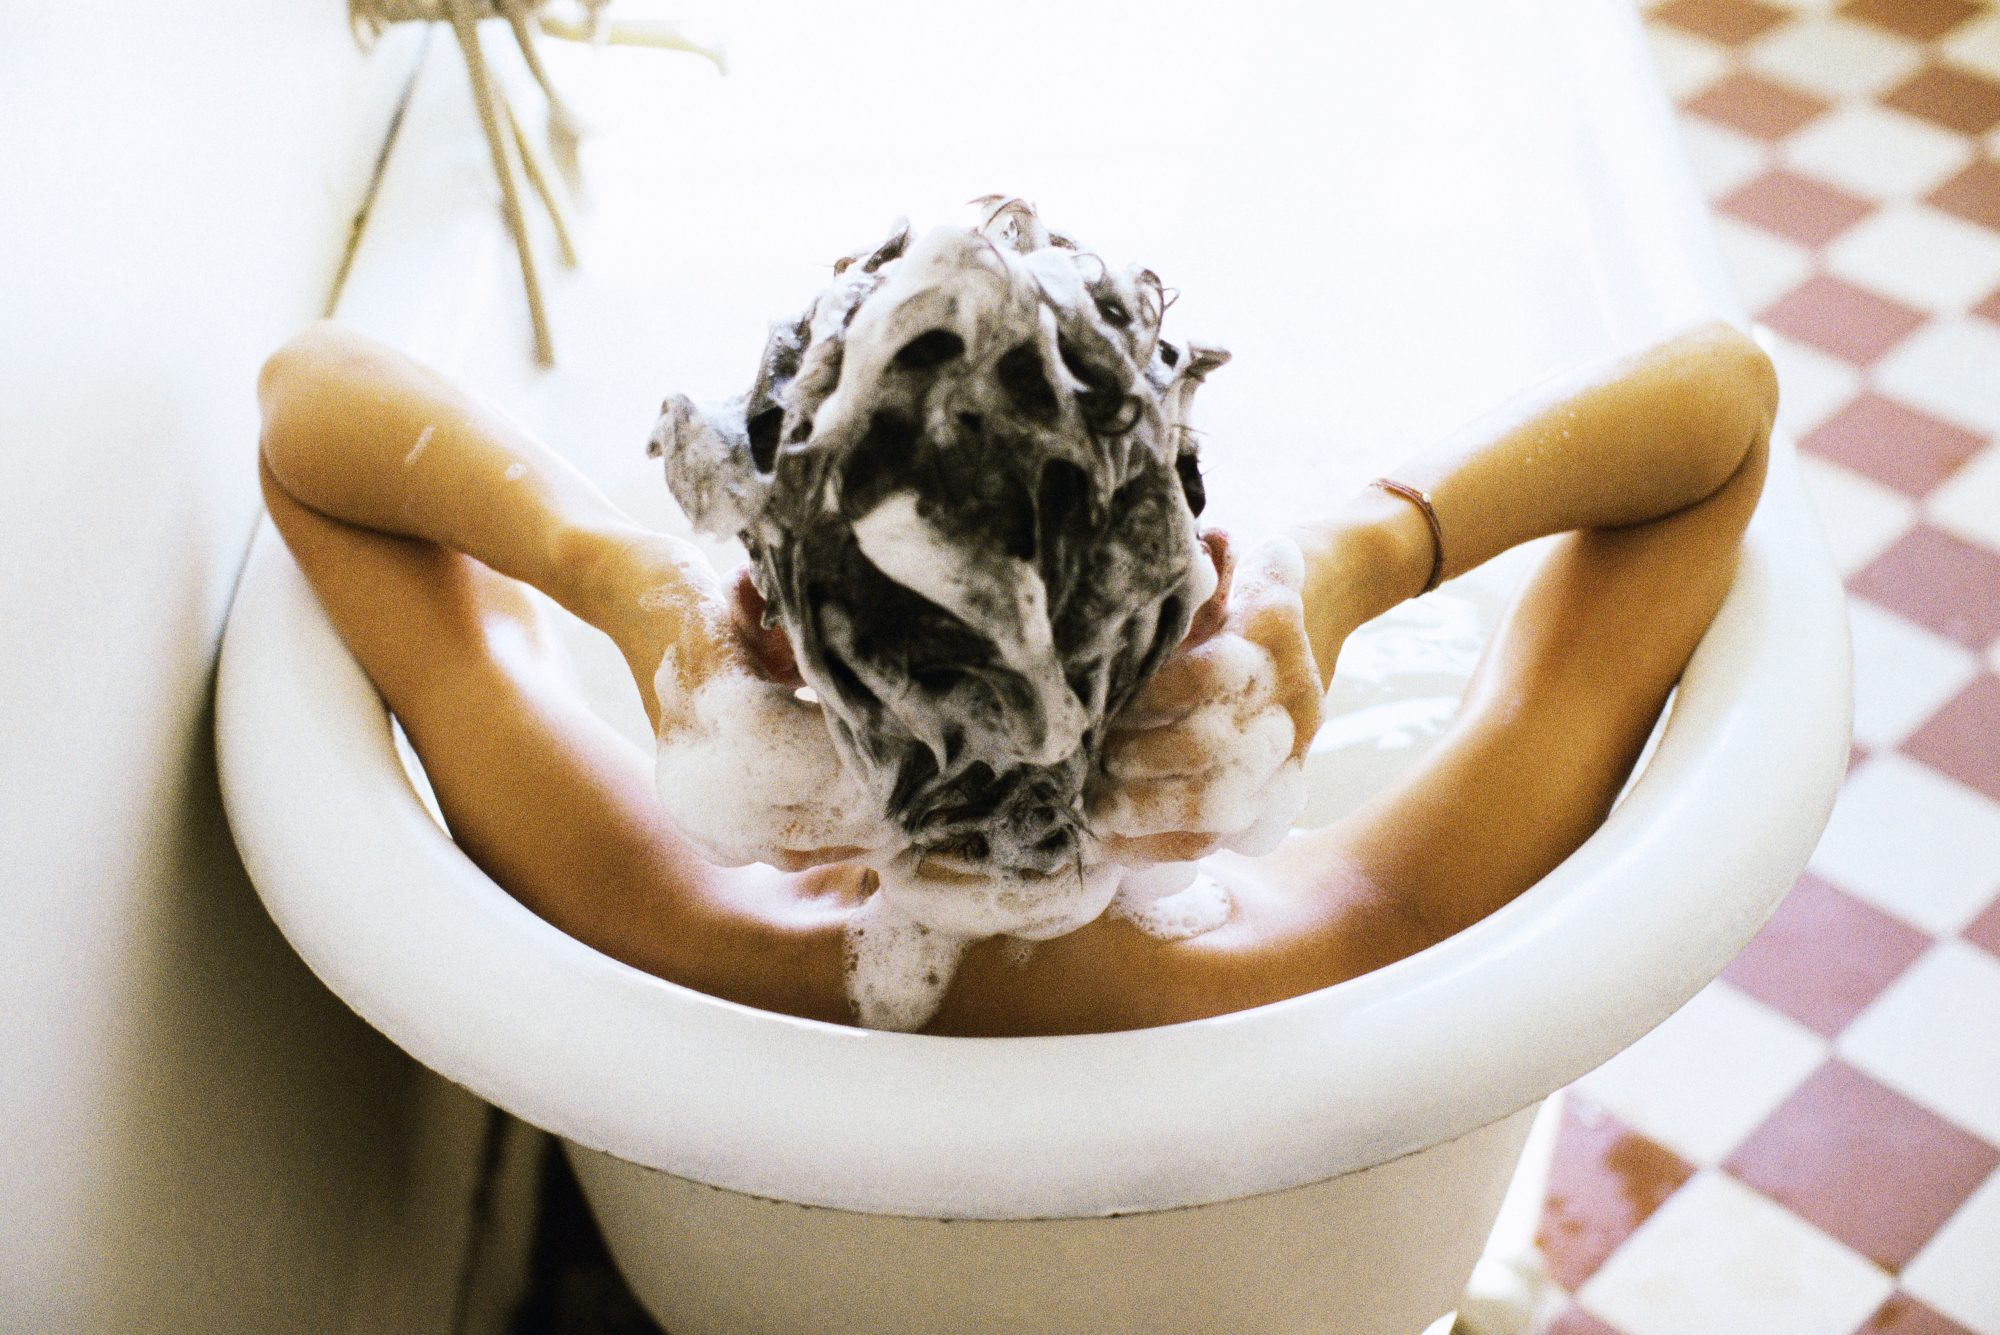 Woman In Tub Washing Her Hair